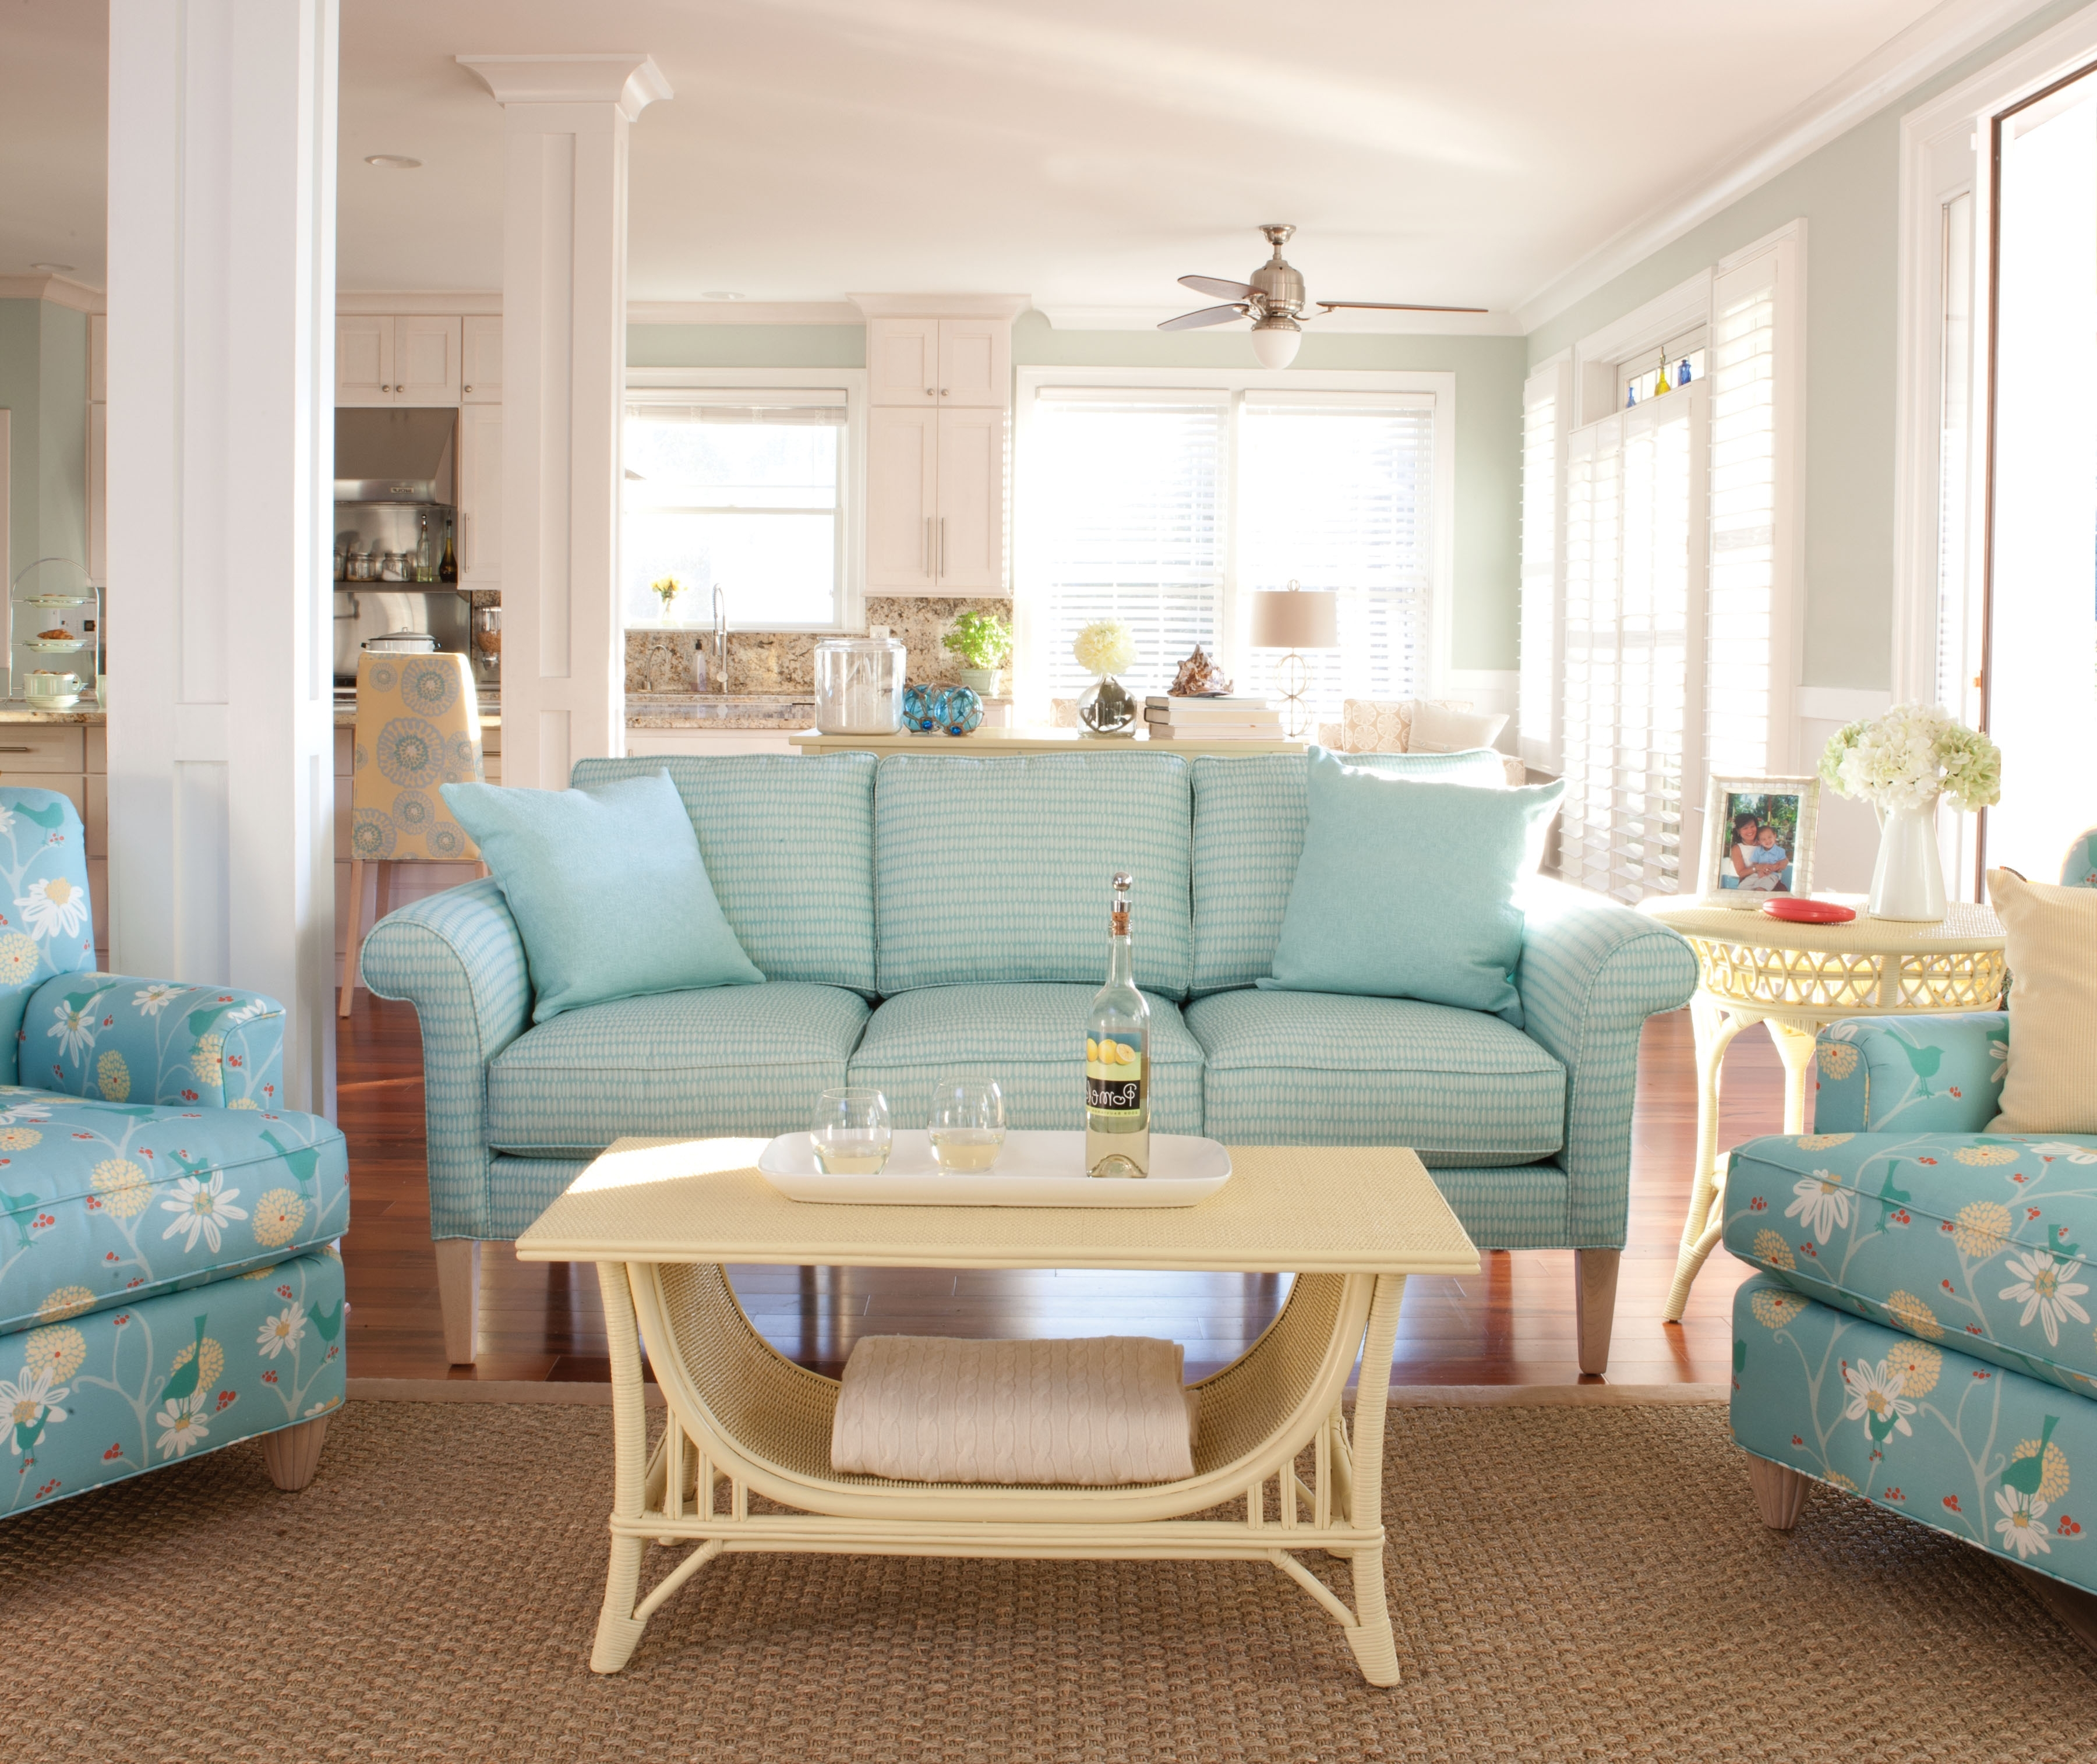 Country Cottage Sofas And Chairs – Lightingridgecellars With Popular Country Cottage Sofas And Chairs (View 7 of 15)